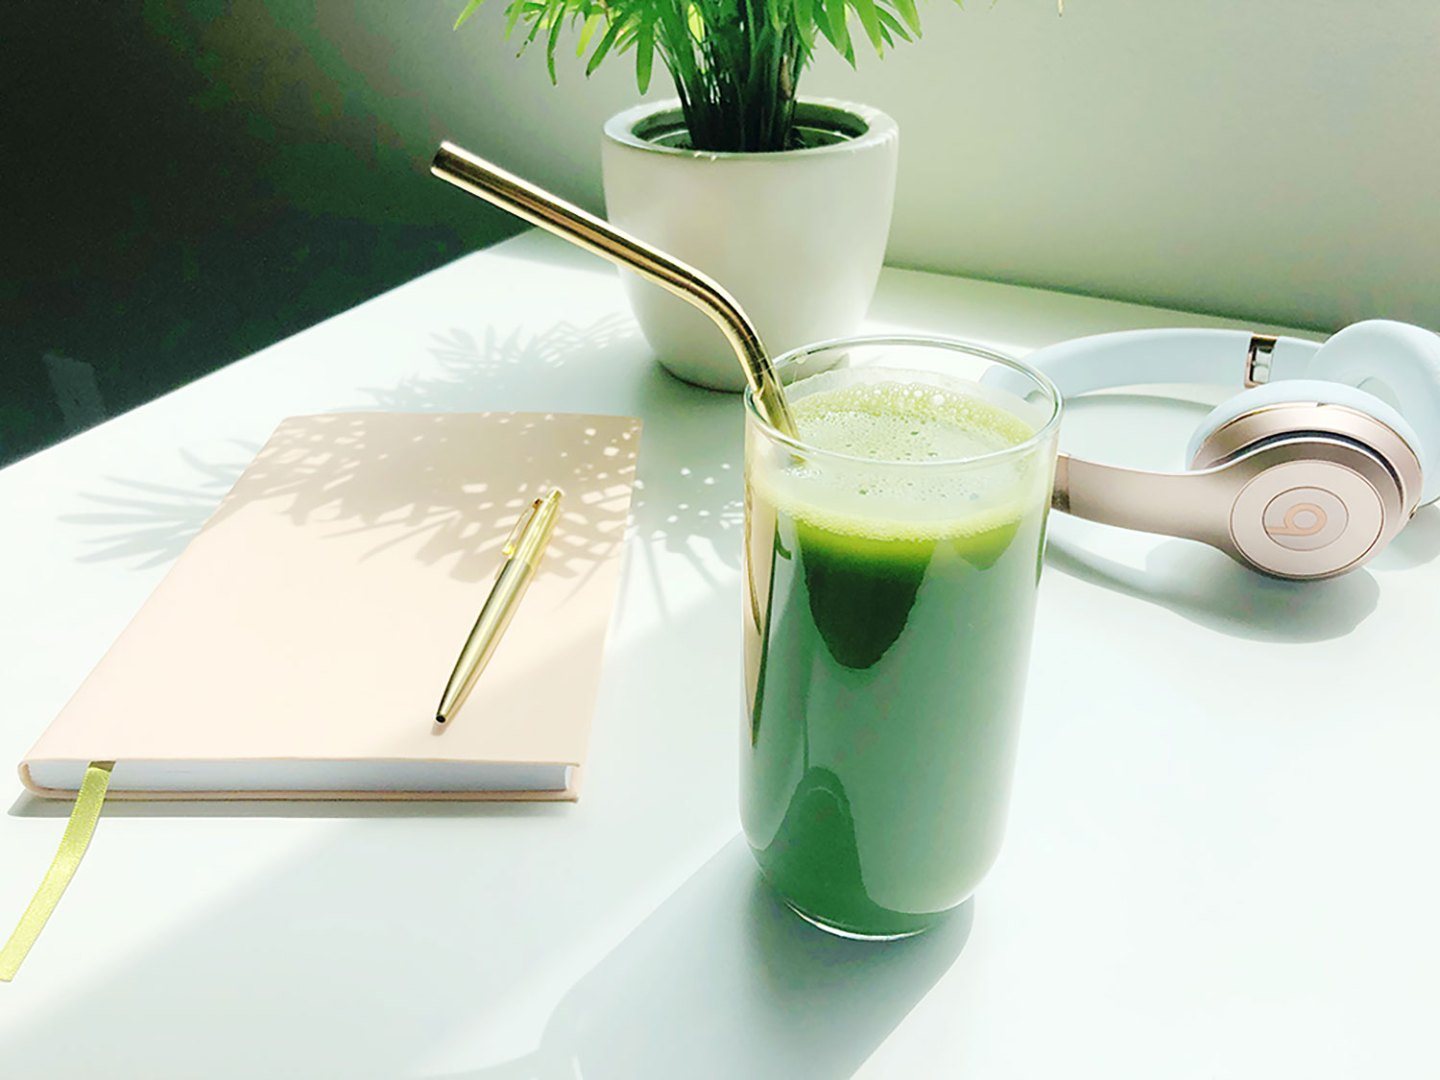 My 3 morning routine obsessions (that have changed my entire day)